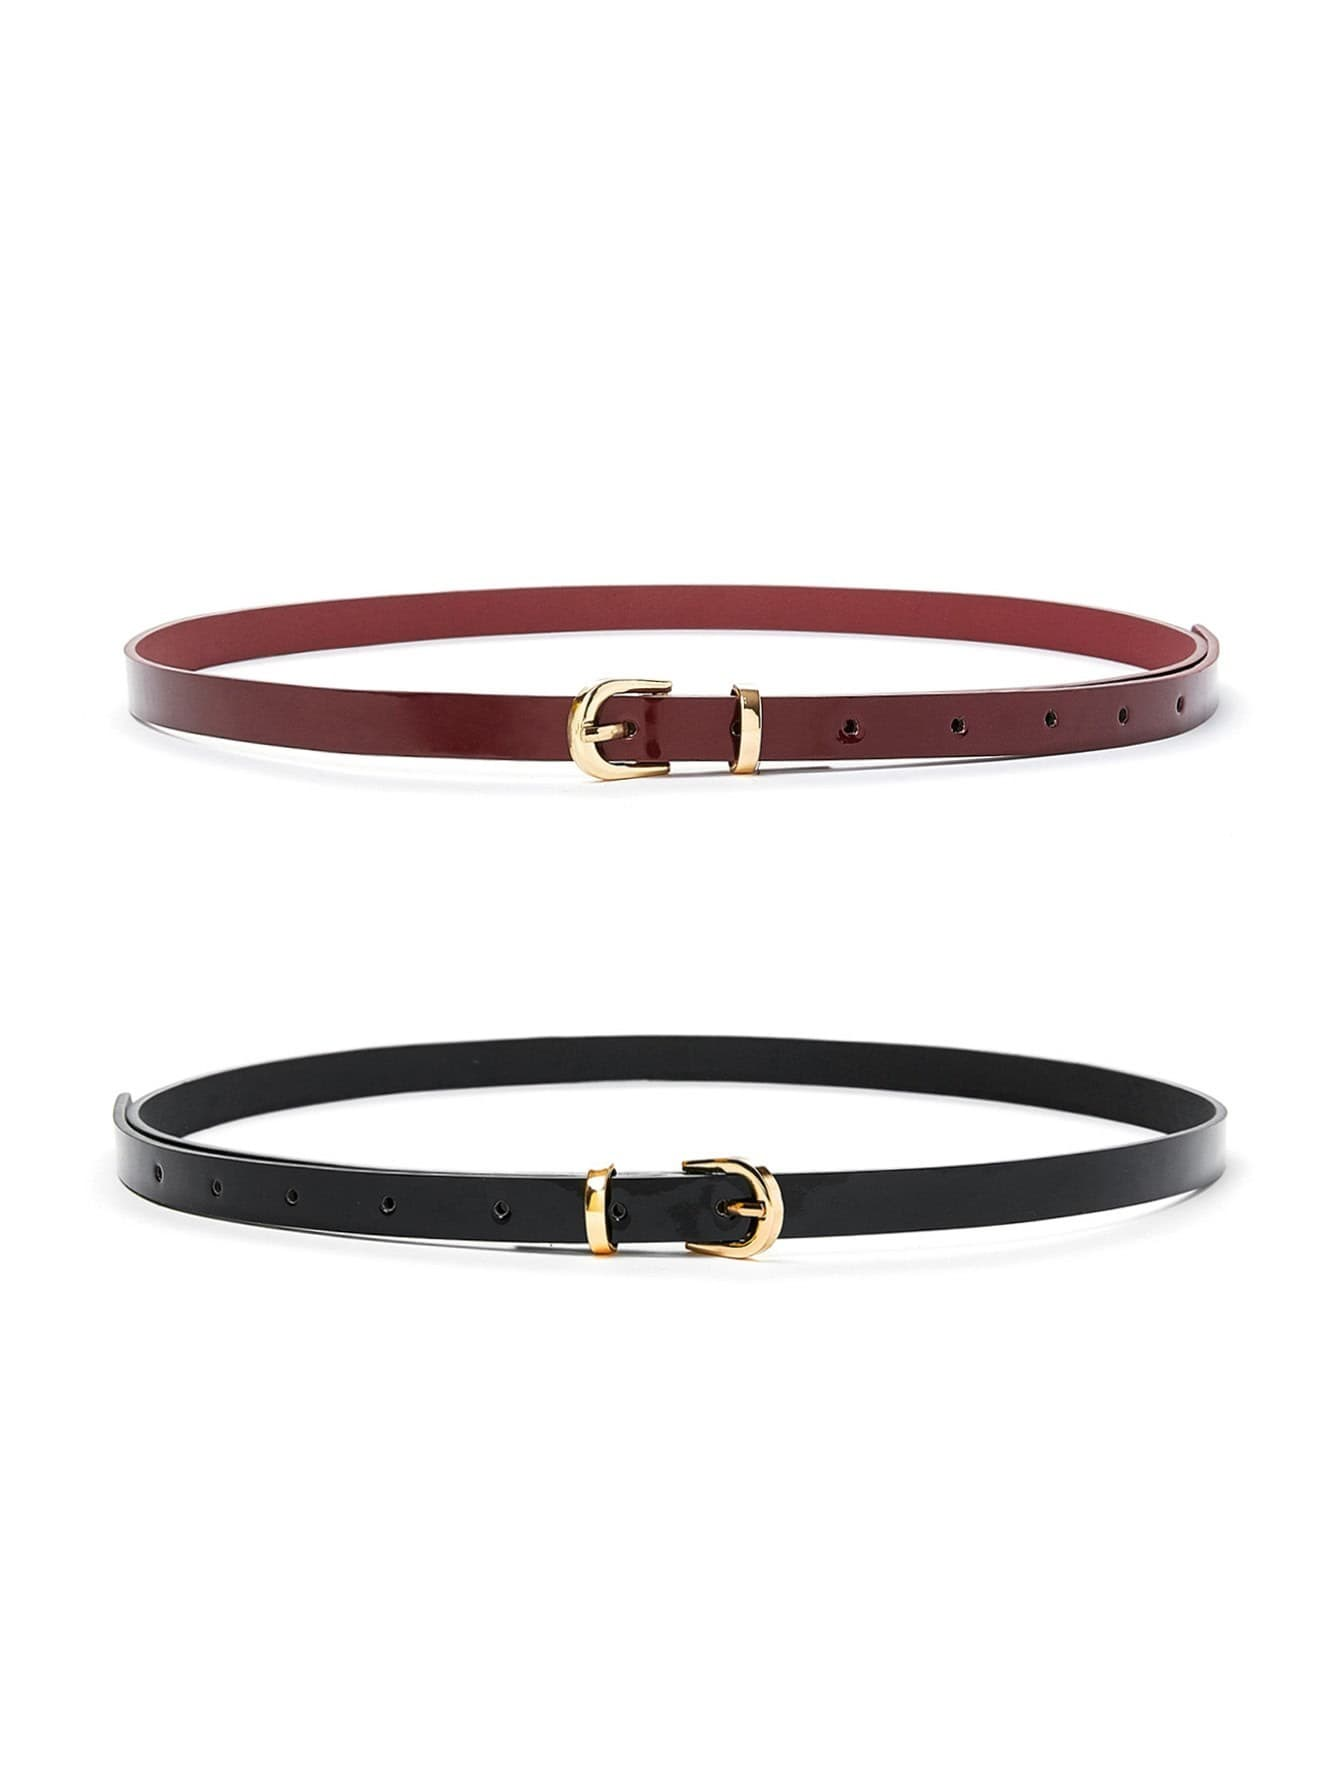 Metal Buckle Skinny Belt 2pcs